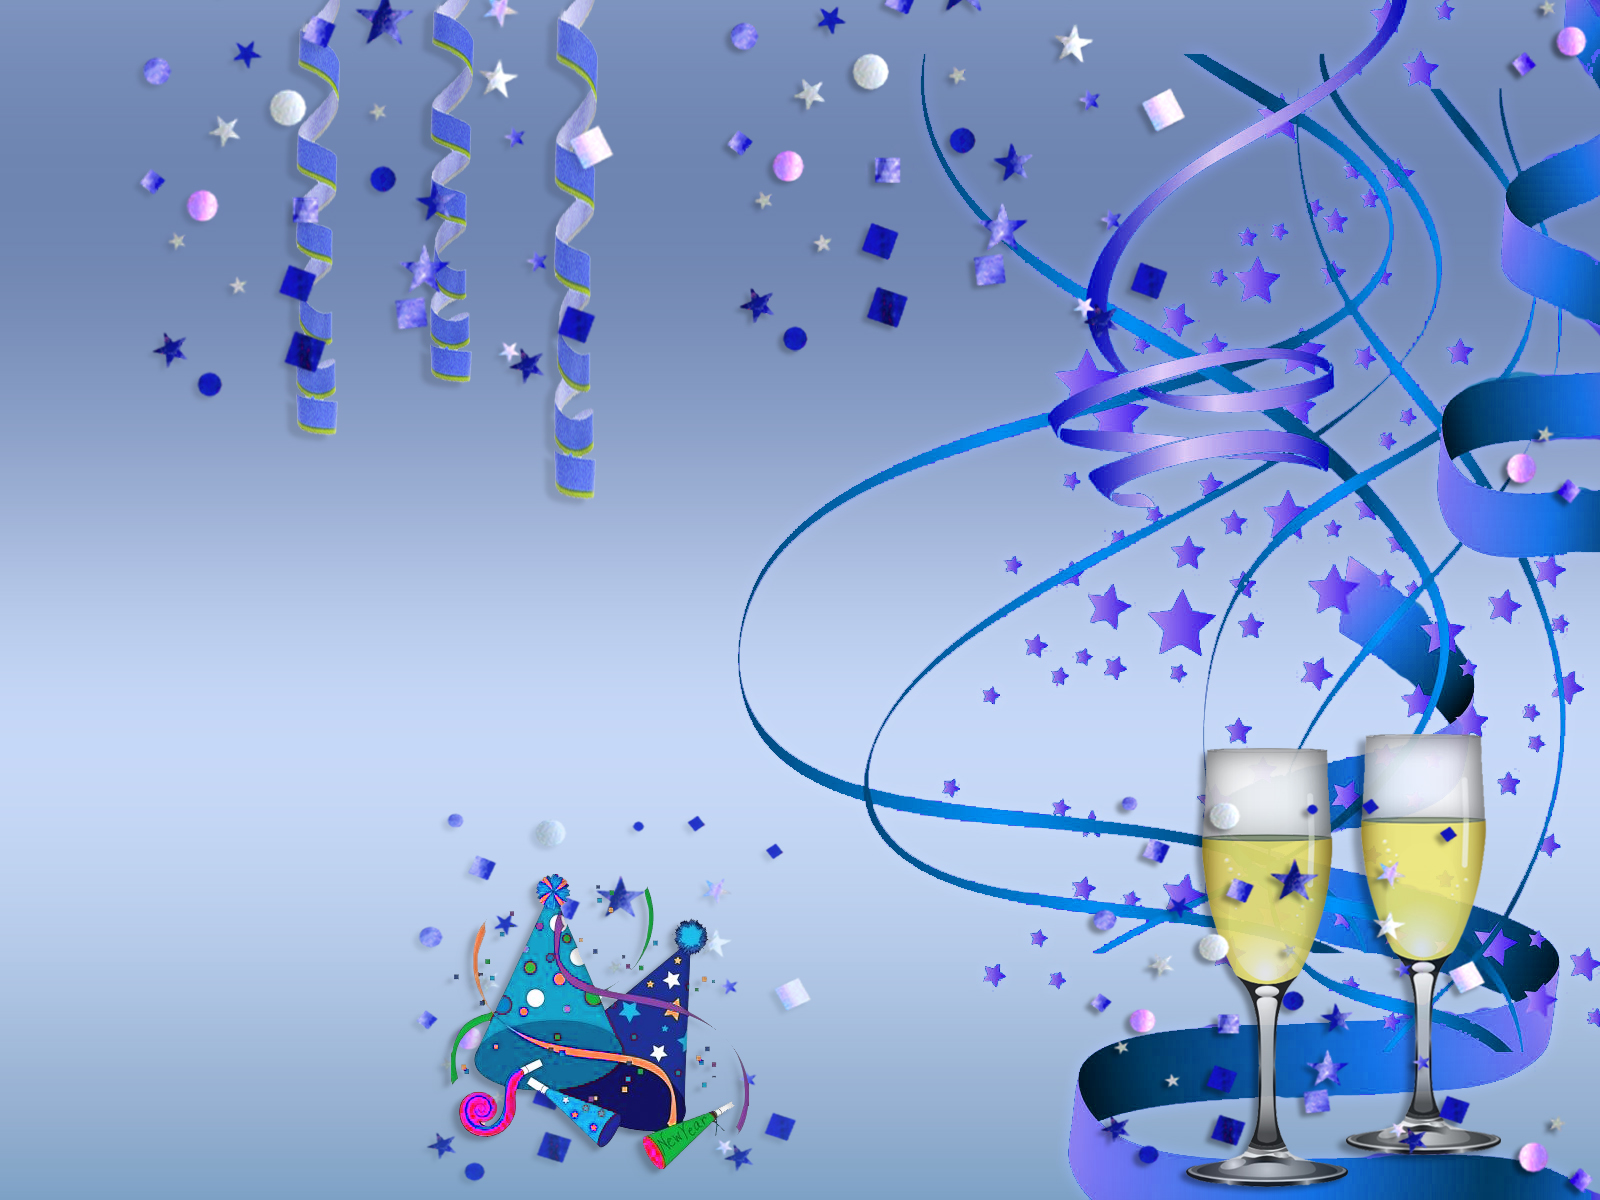 Happy New Year Wallpapers Desktop Backgrounds | Desktop Background ...